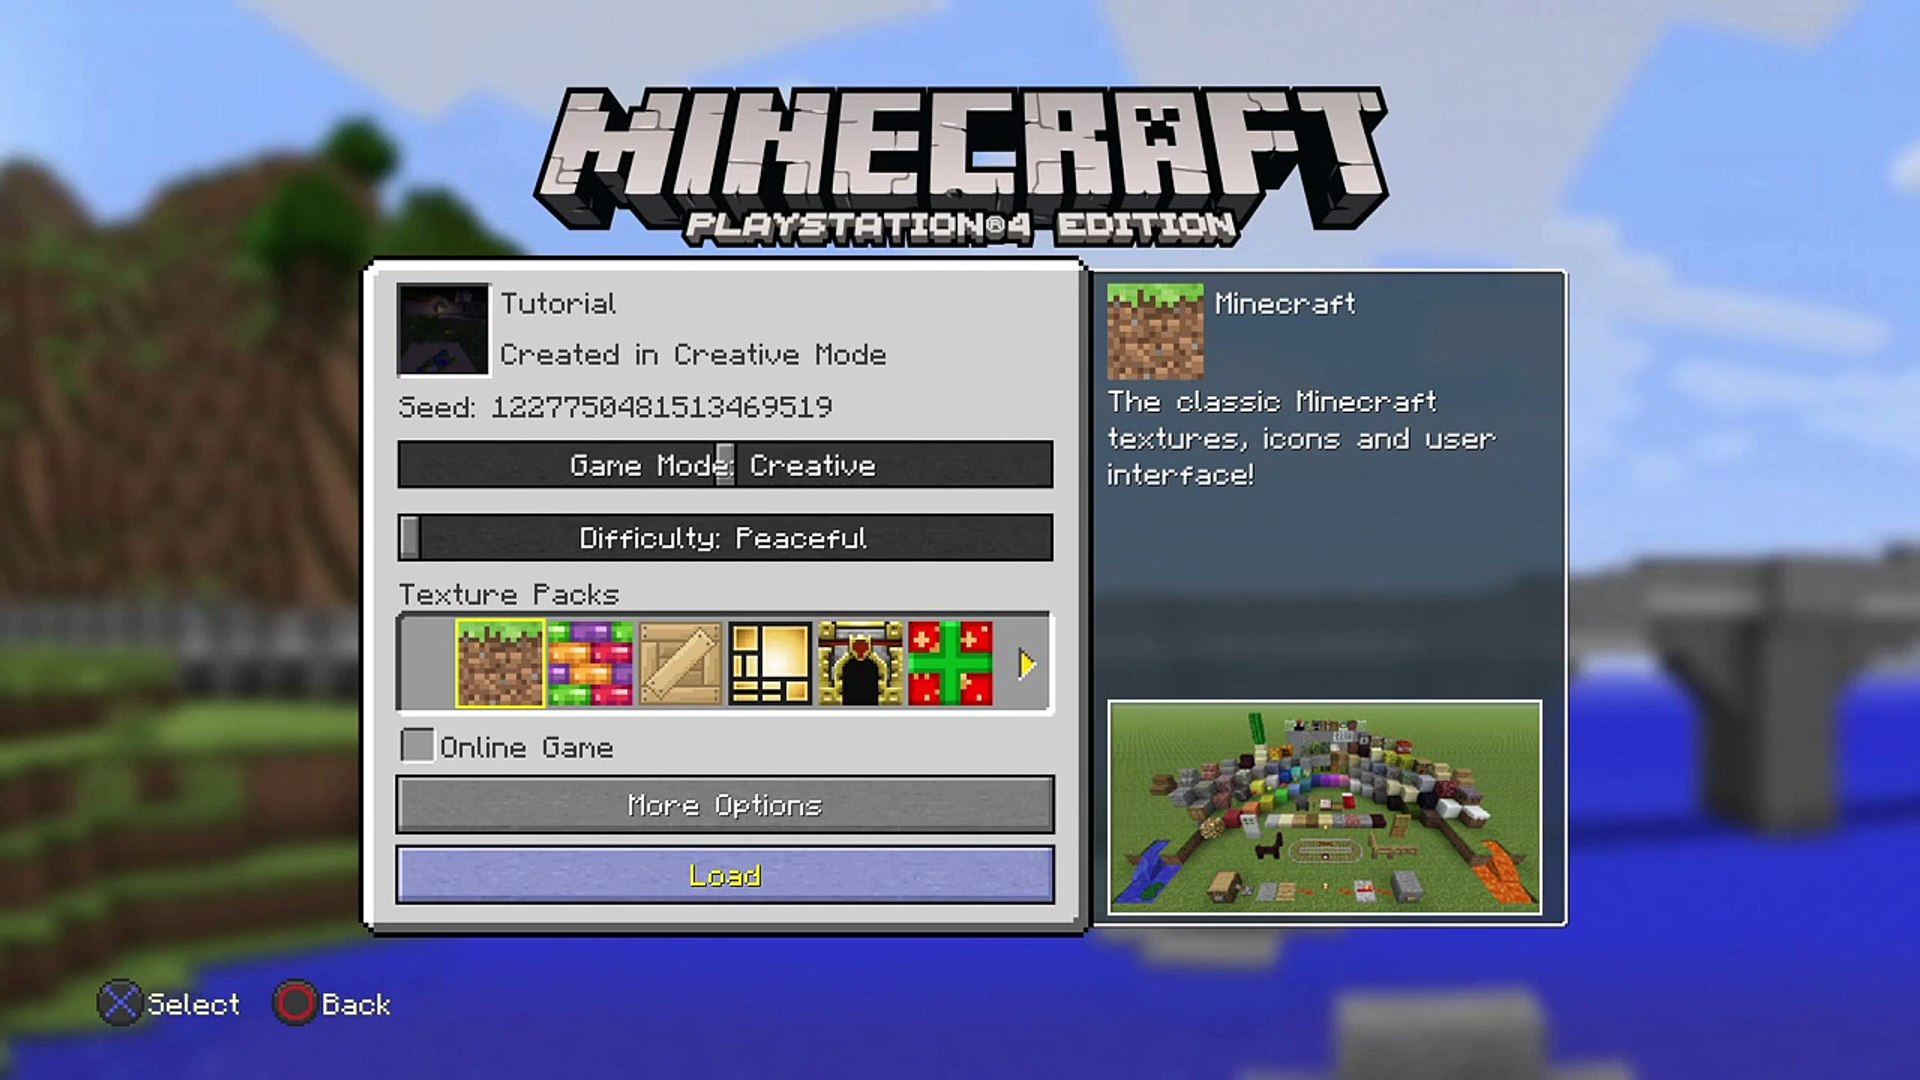 How to find stampy's house in minecraft tutorial